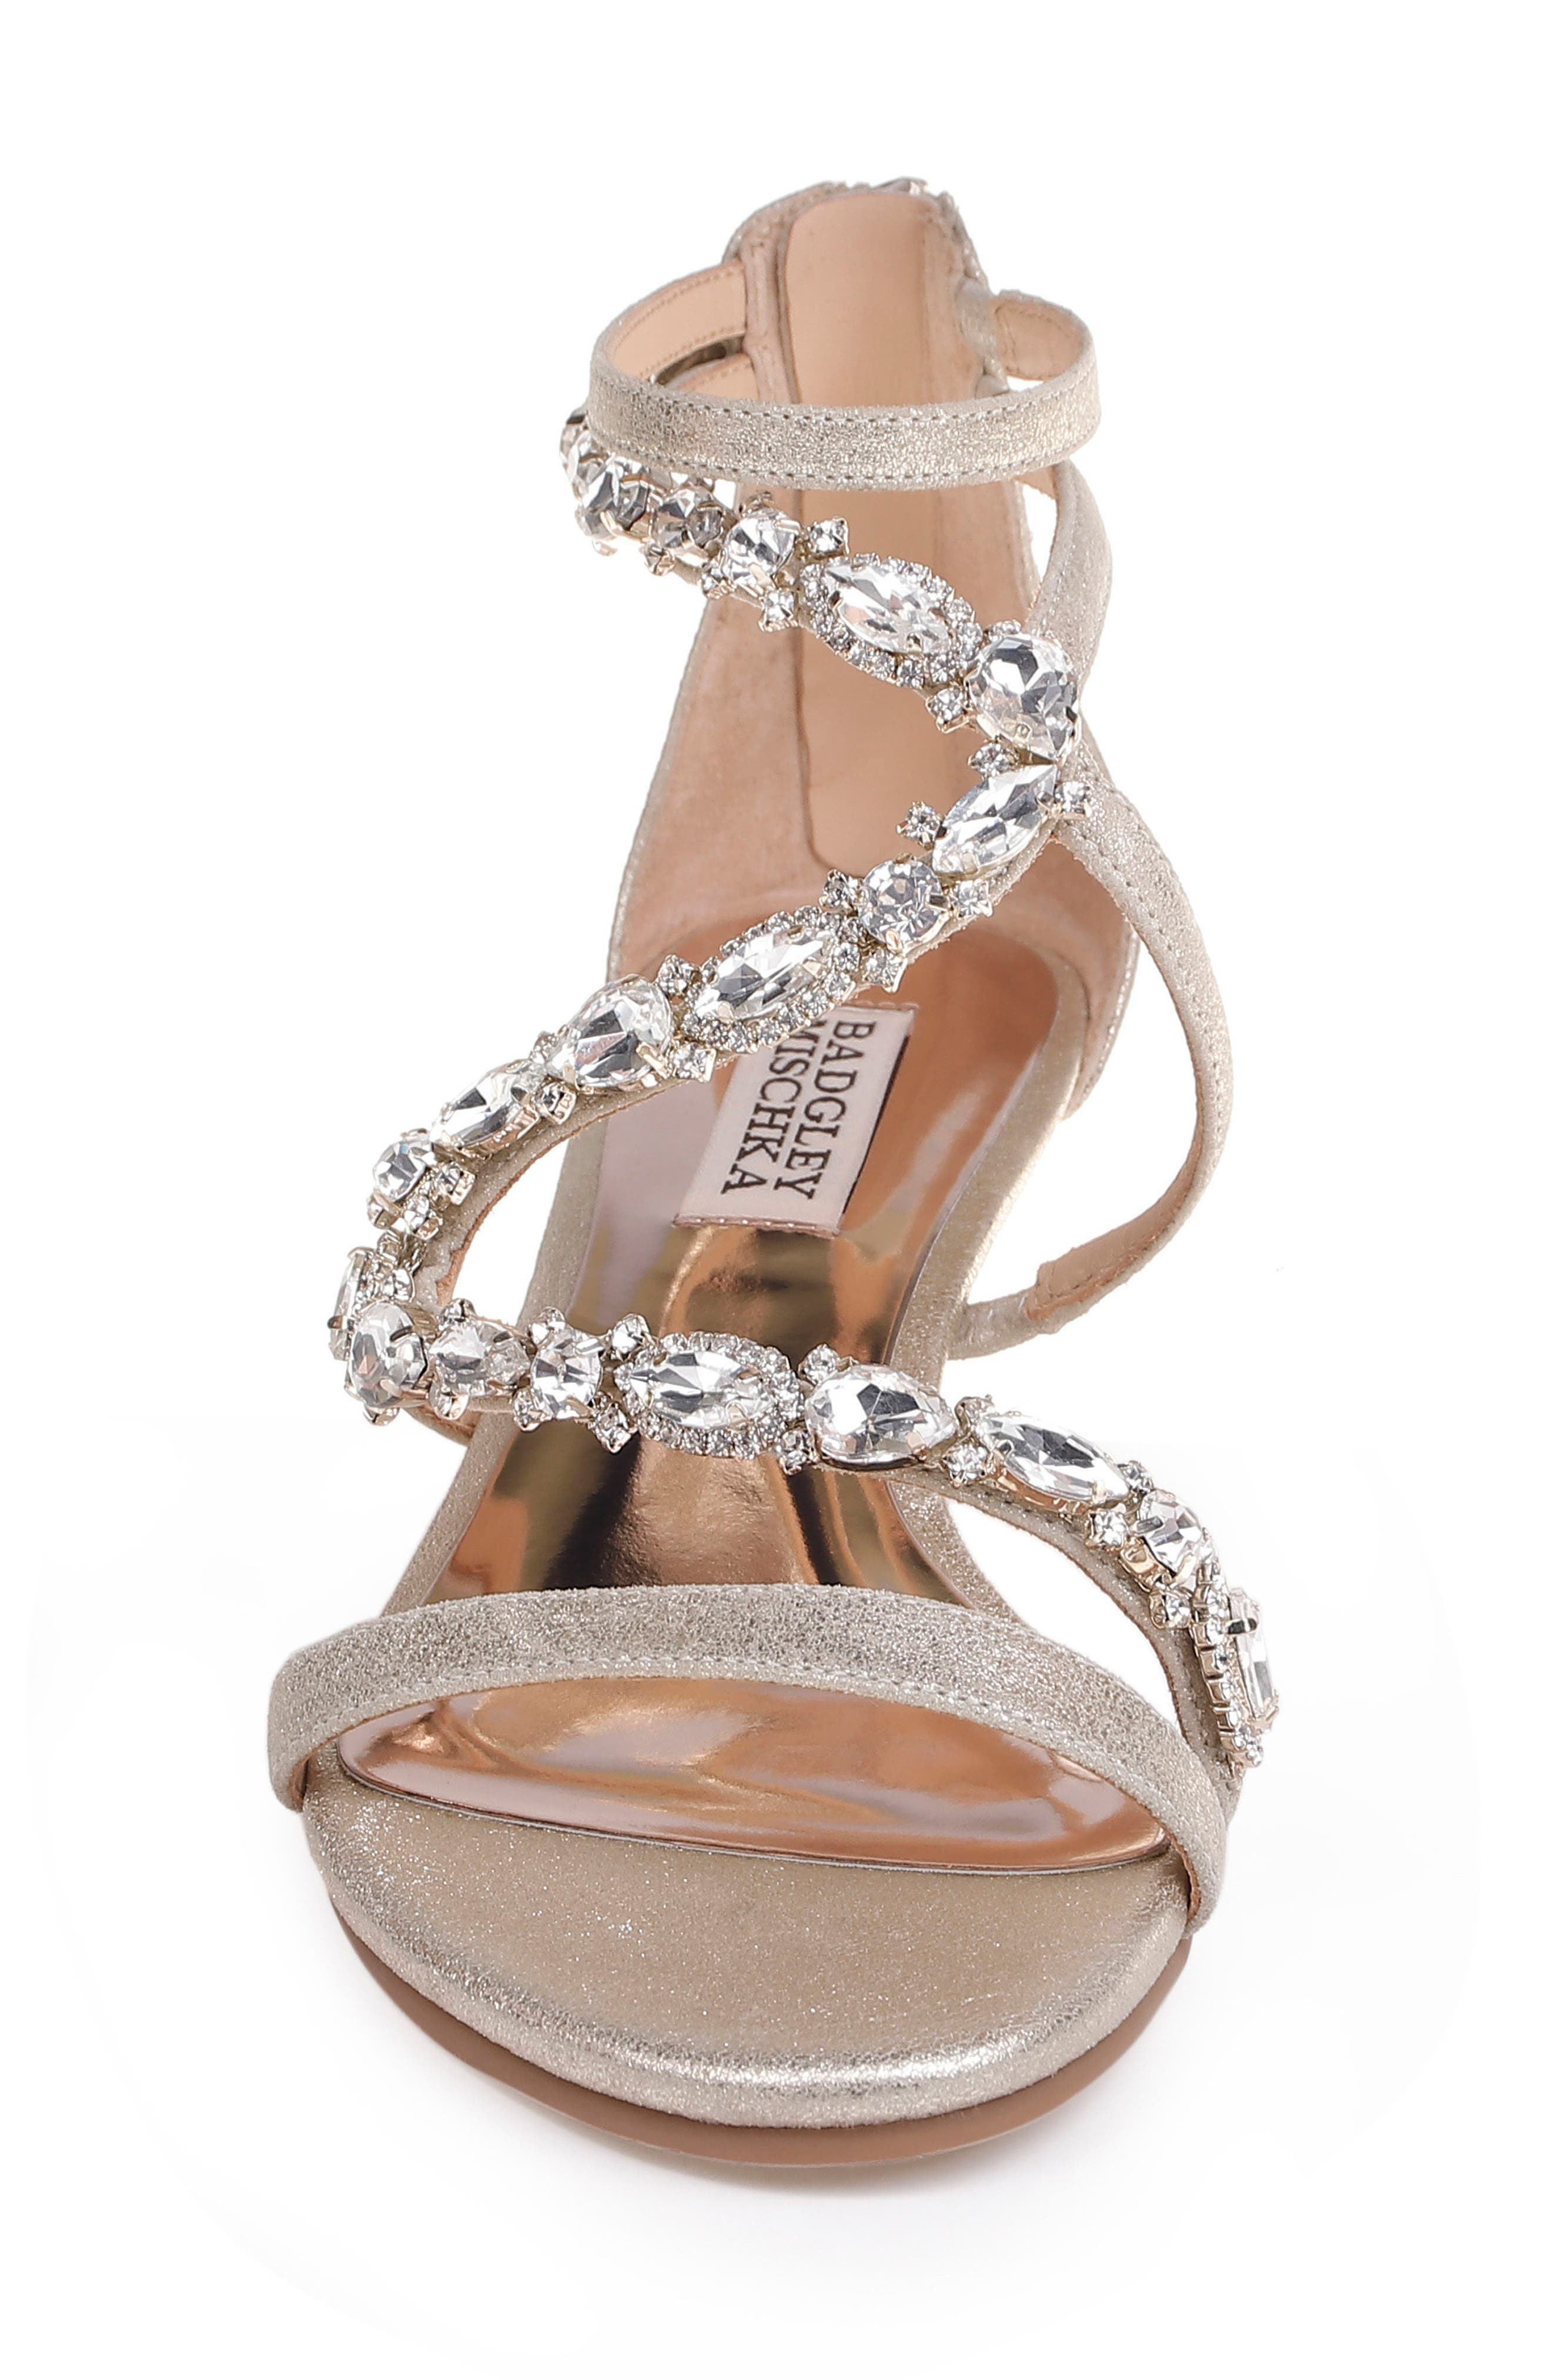 Sierra Strappy Wedge Sandal,                             Alternate thumbnail 4, color,                             Platino Suede